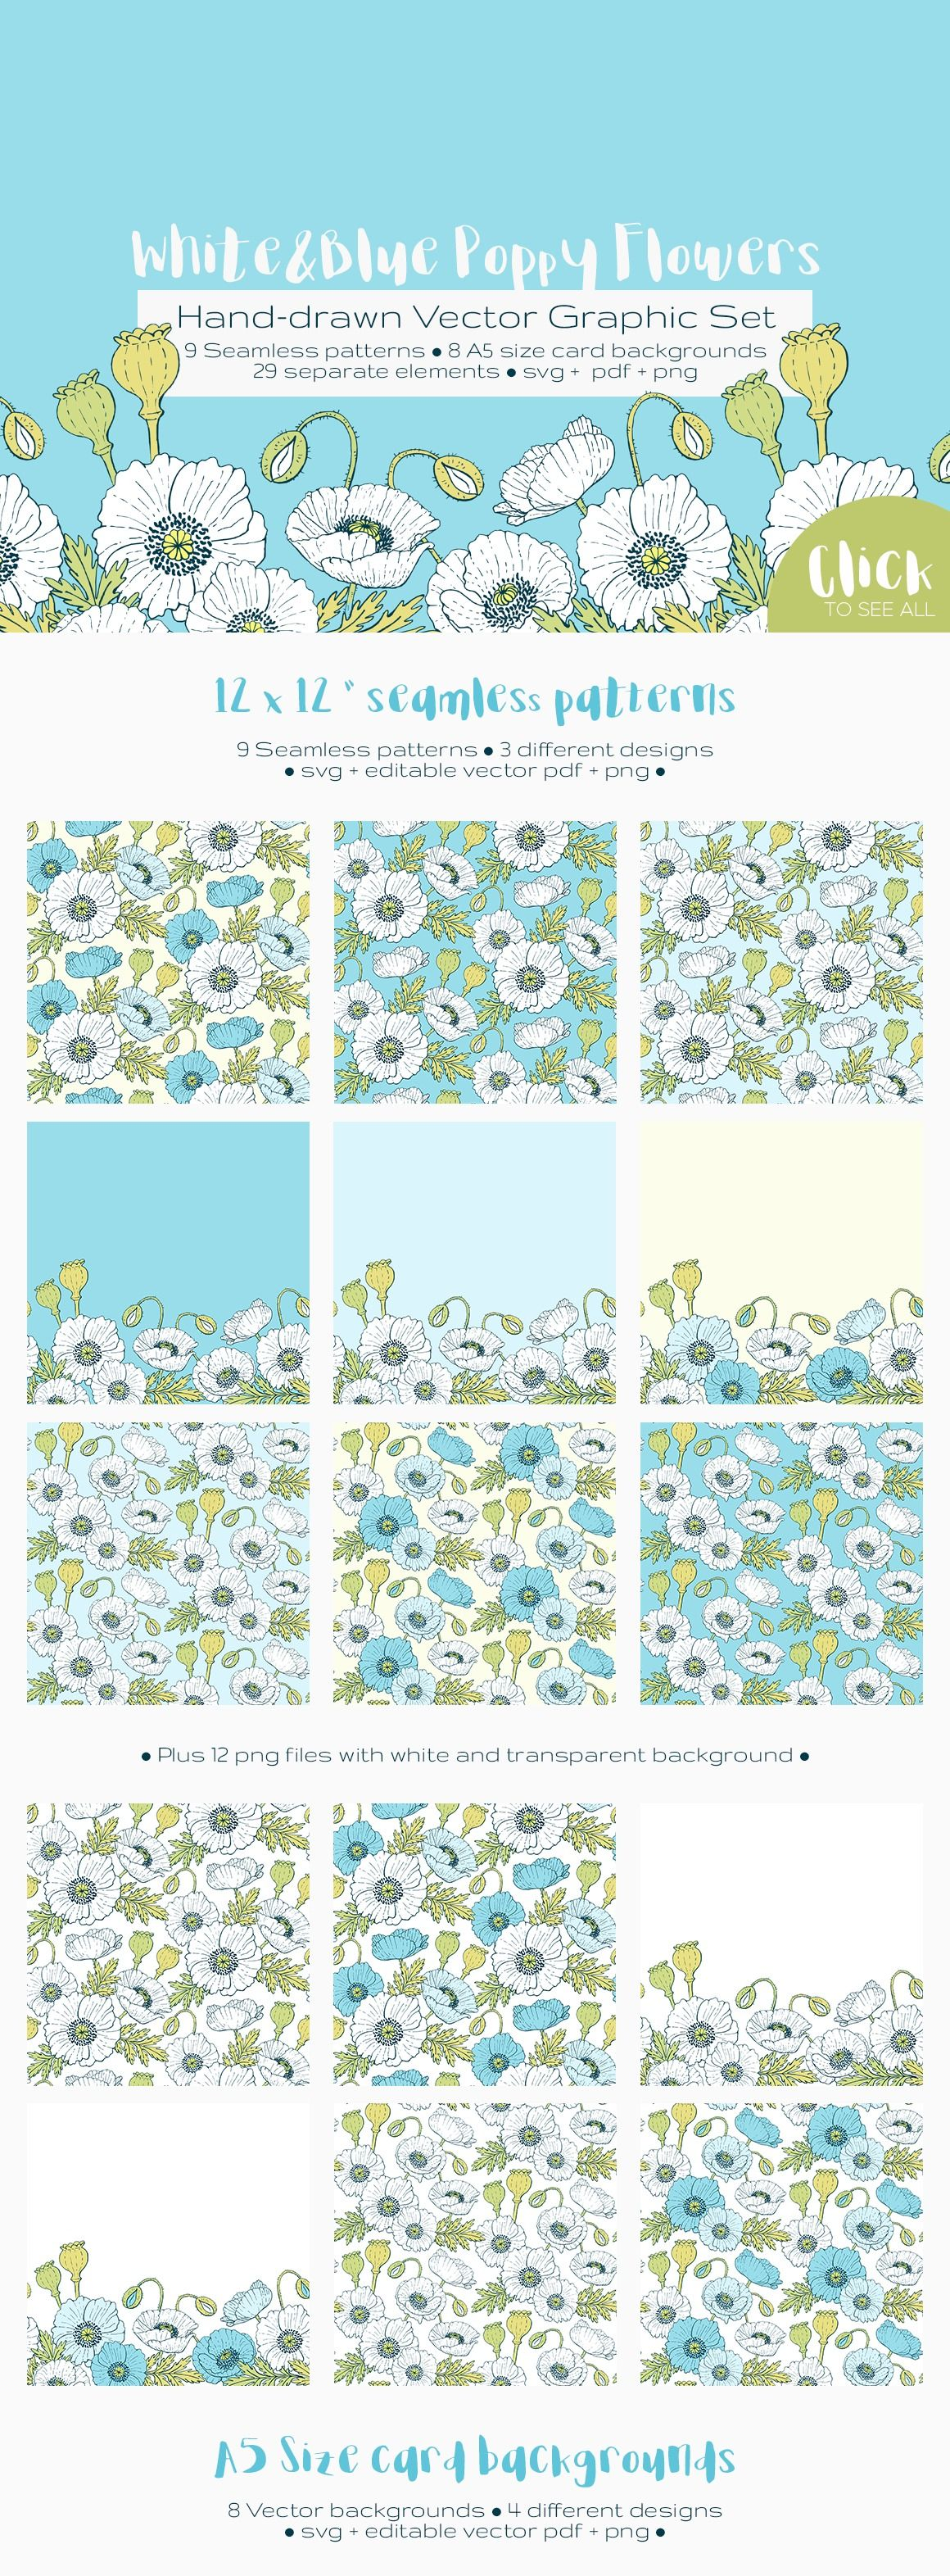 White & Blue Poppies Hand-drawn Vector Graphics Set by Annabella Keszi free download via 4vector.com | @4vector